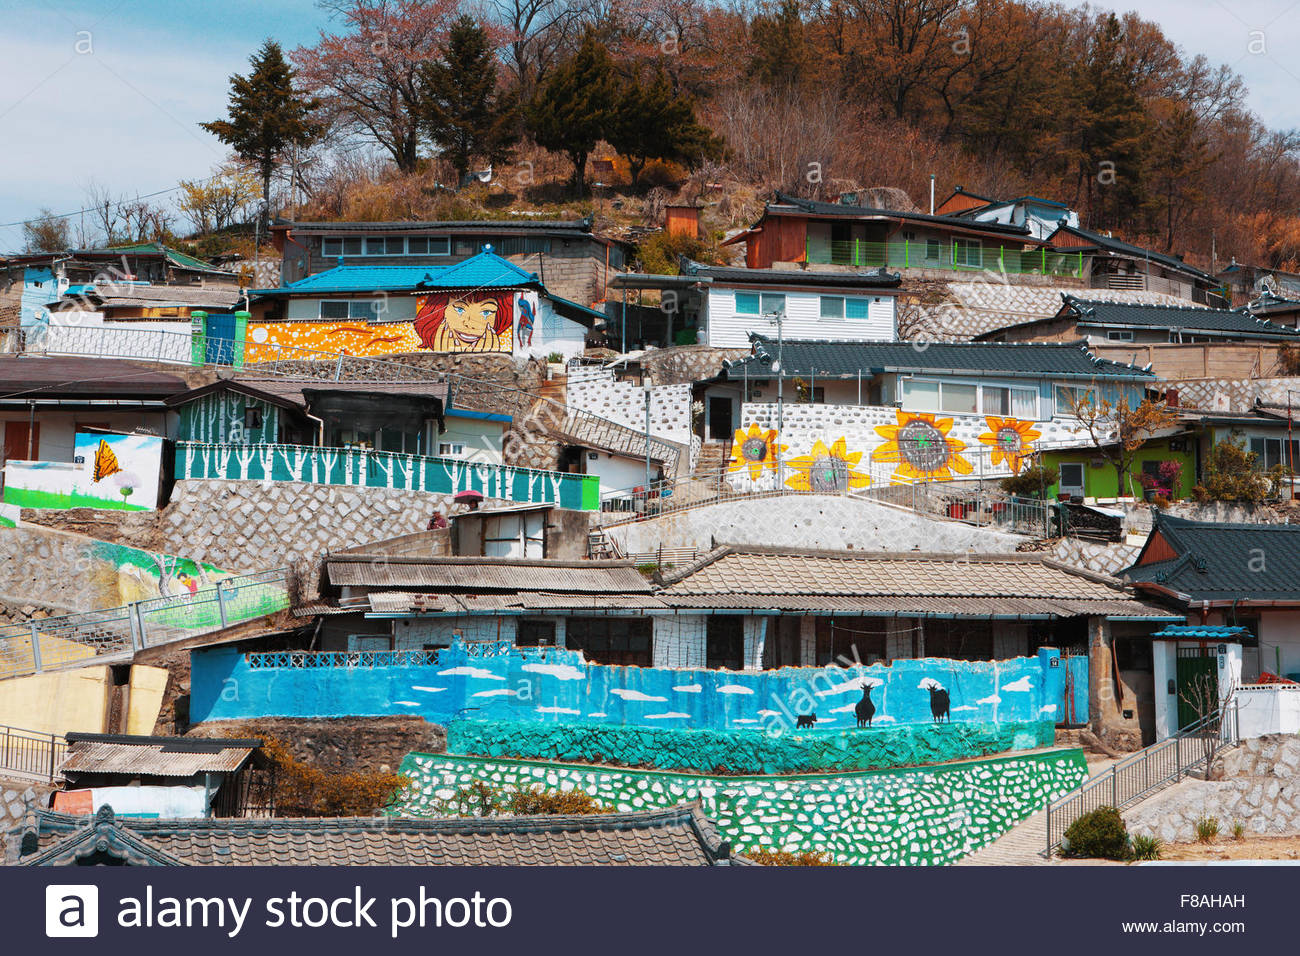 Mural village stock photo royalty free image 91202233 for Mural village